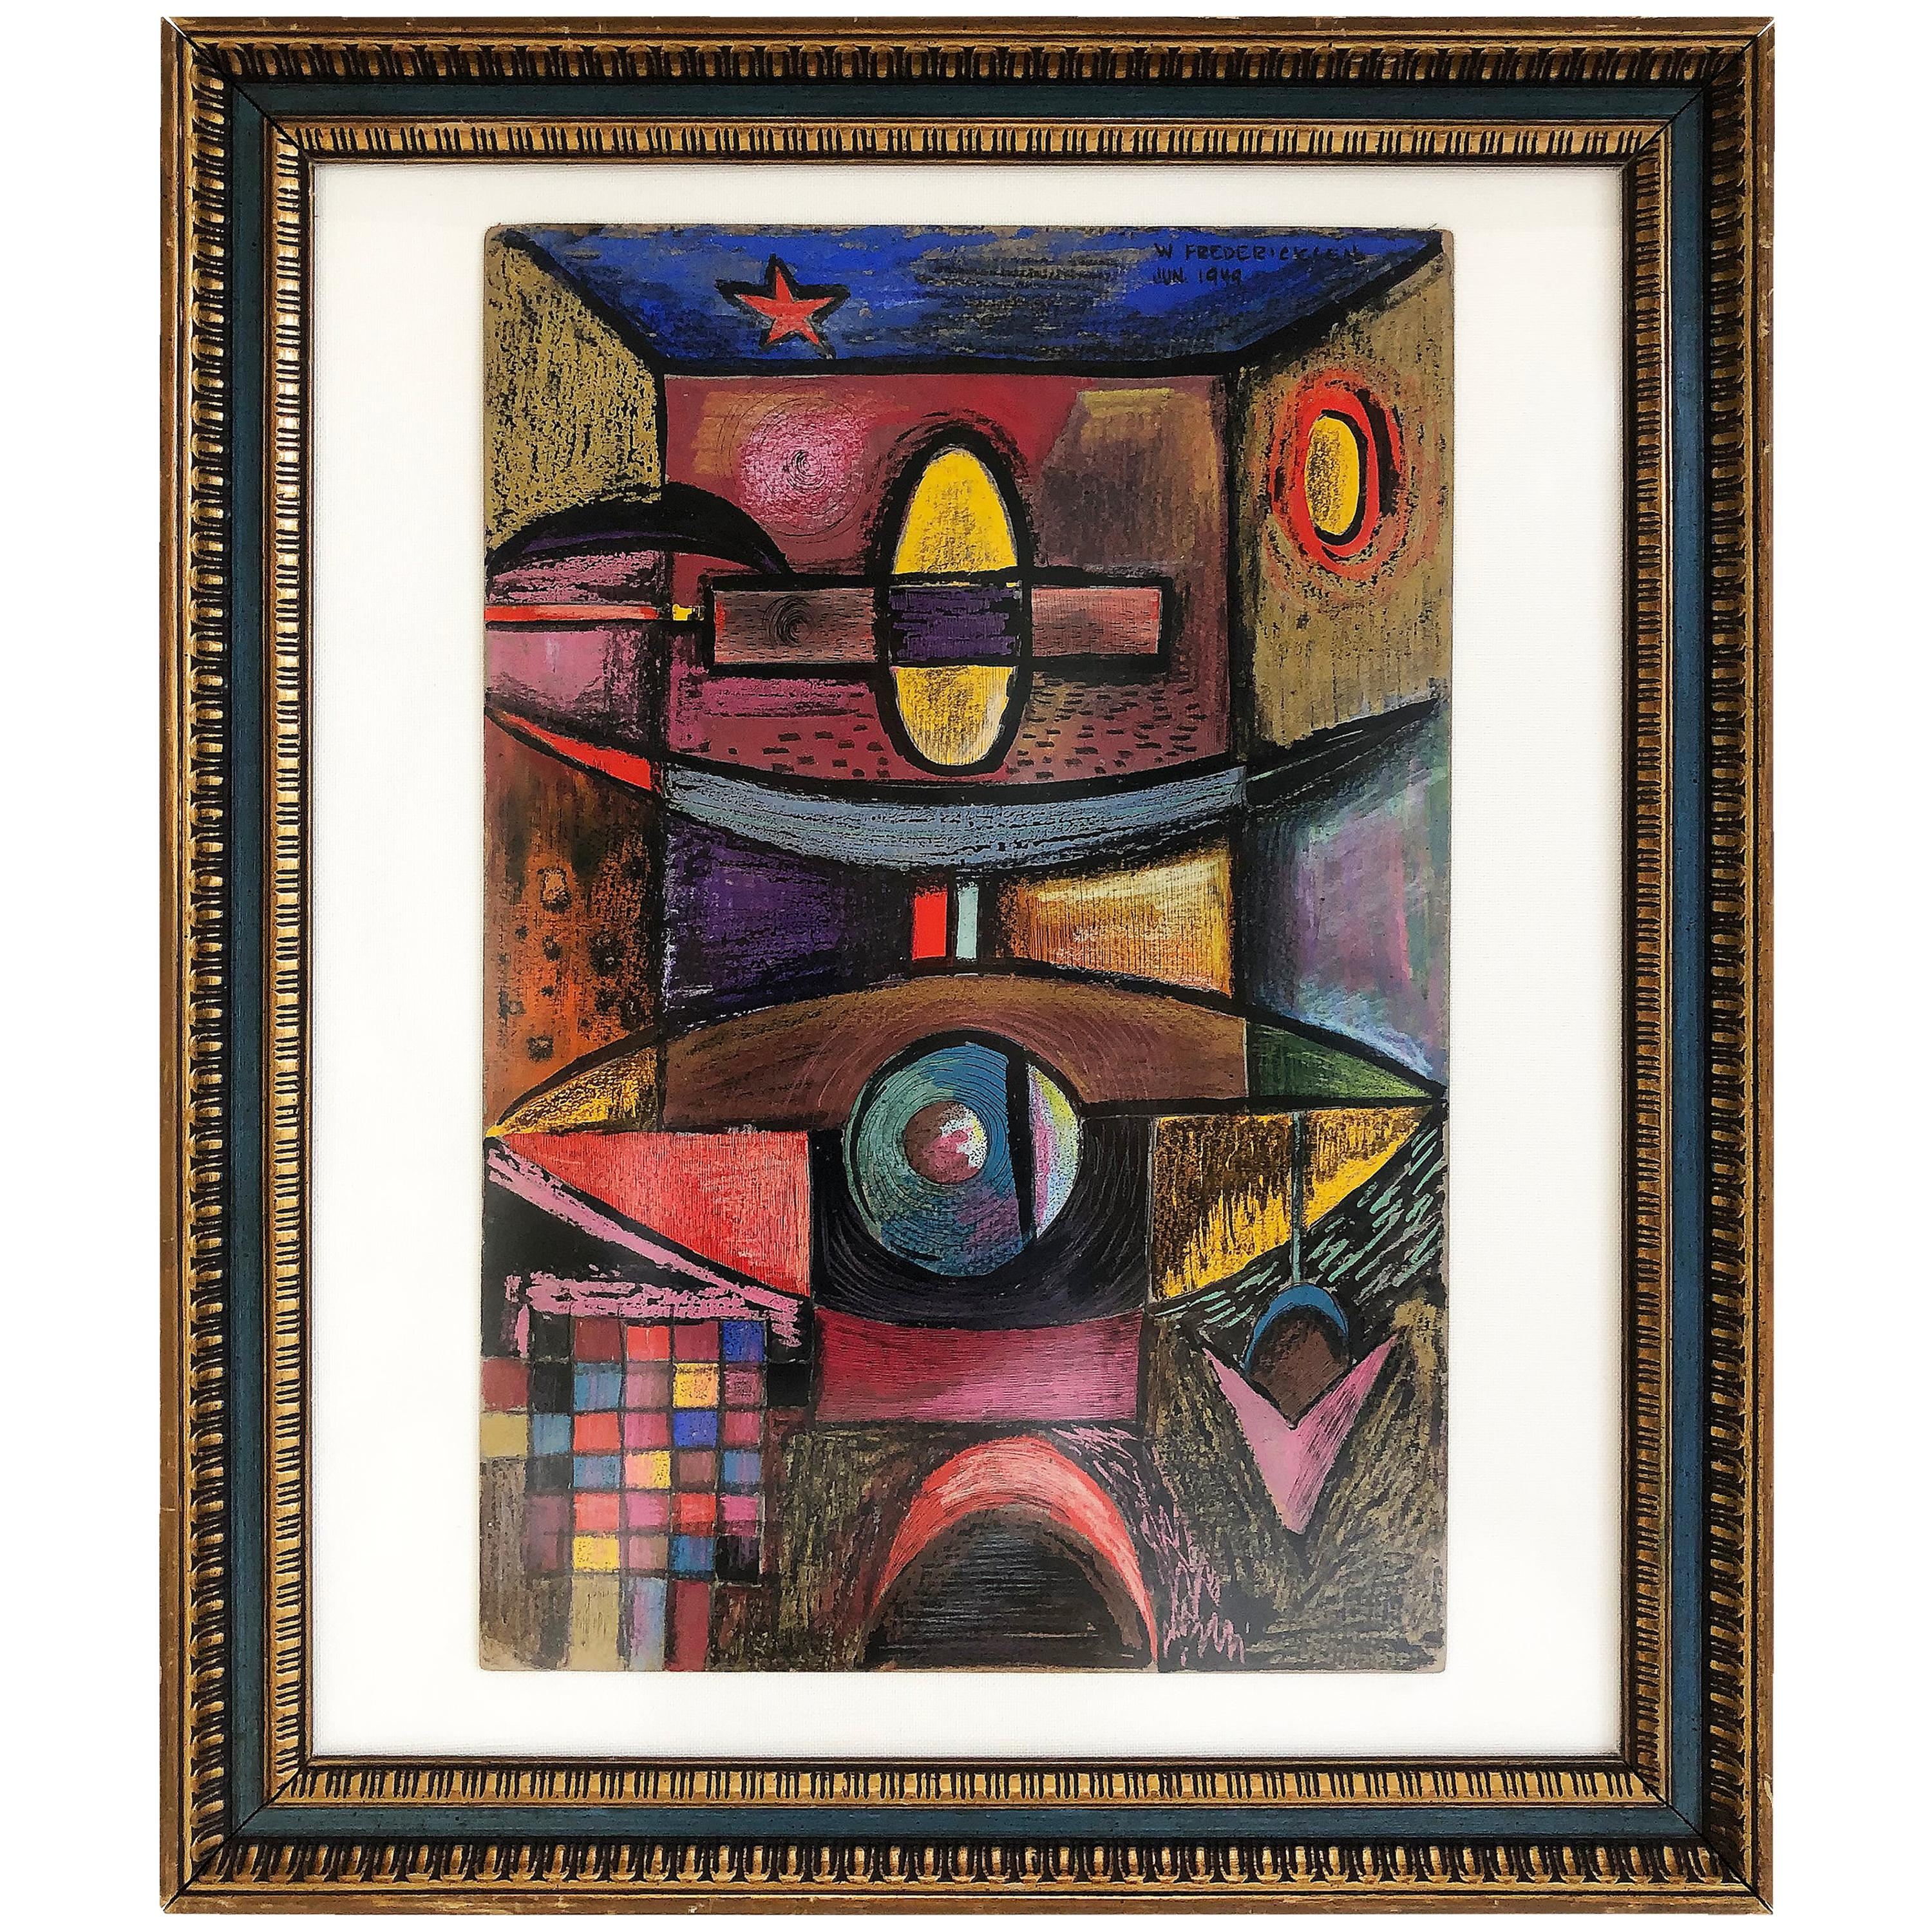 1949 W. Fredericks Abstract Cubist Pastel Drawing